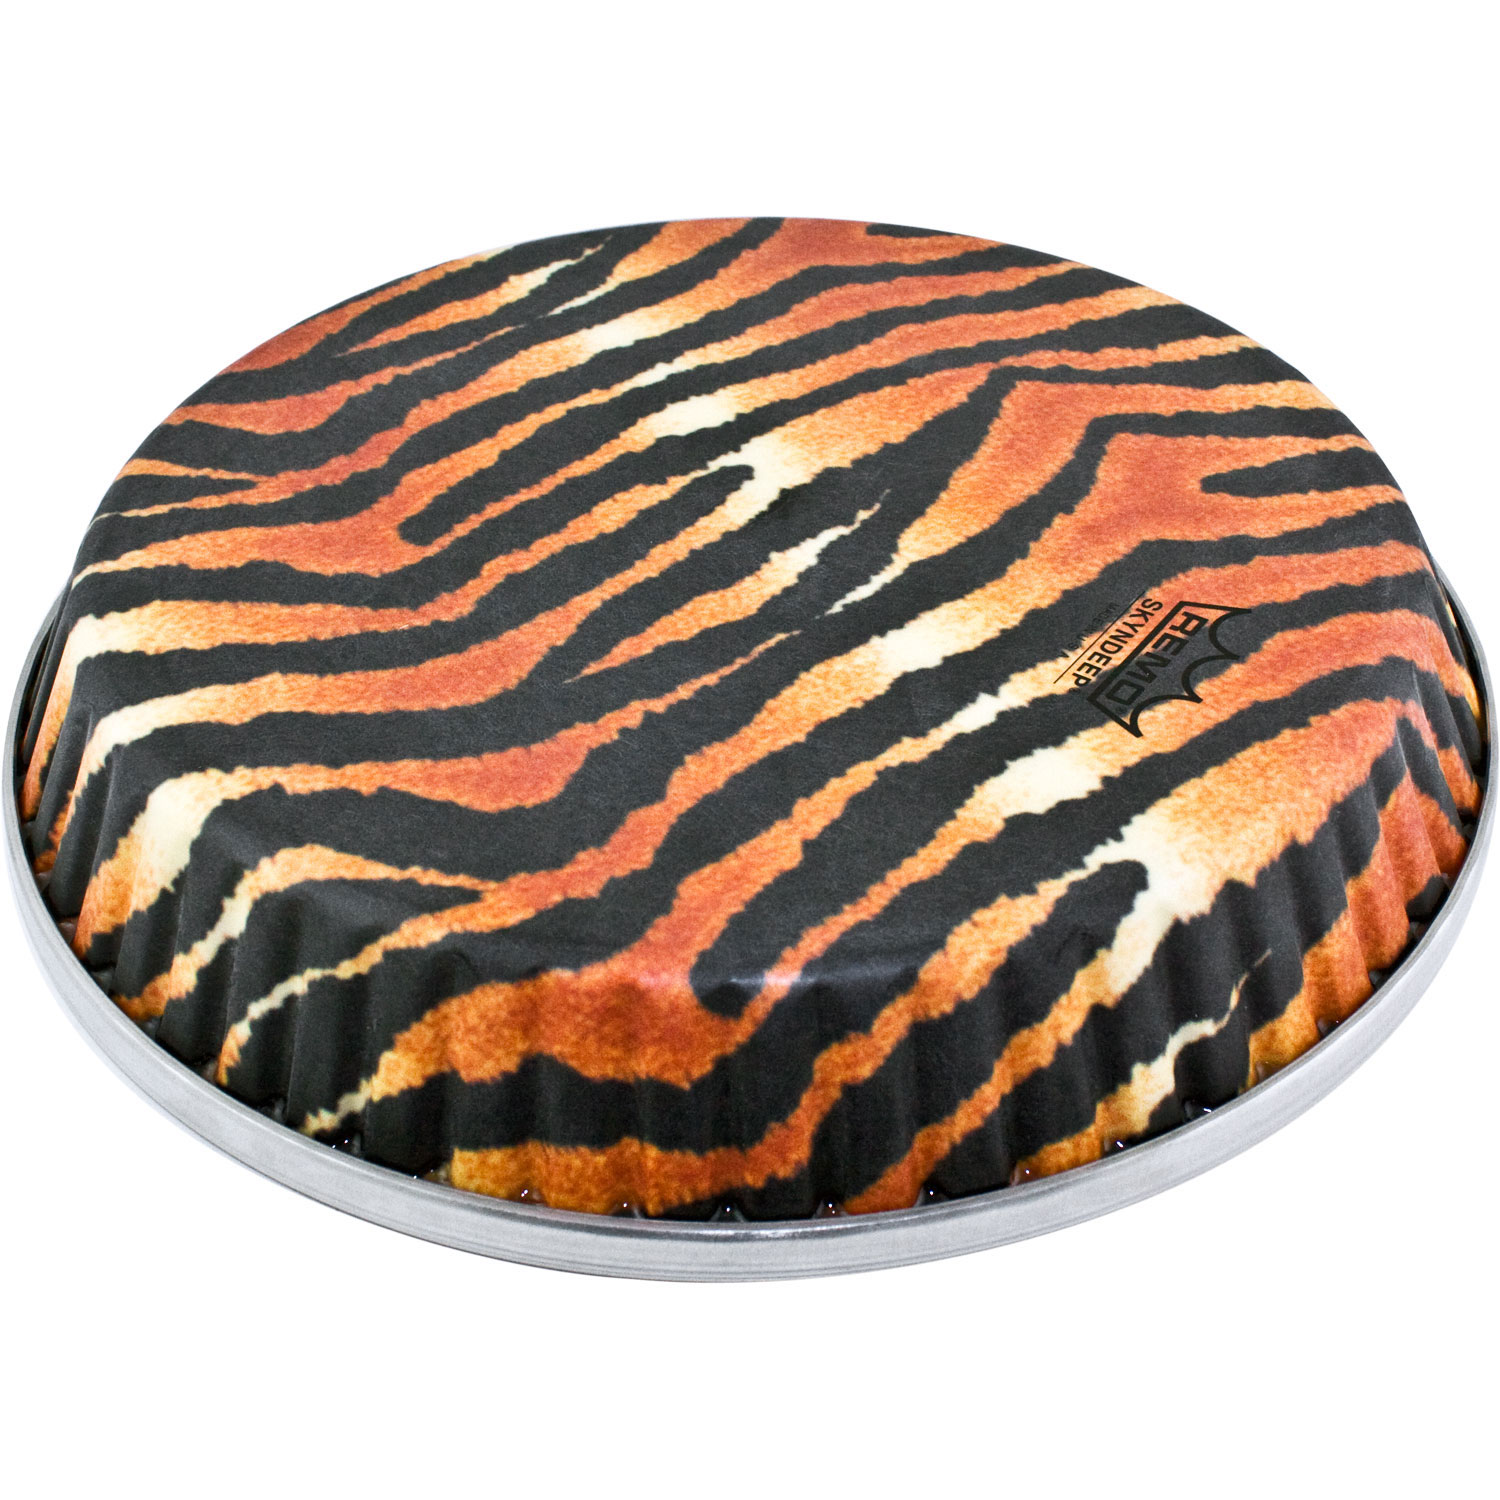 "Remo 9.75"" Symmetry Skyndeep Conga Drum Head (D2 Collar) with Tiger Stripe Graphic"